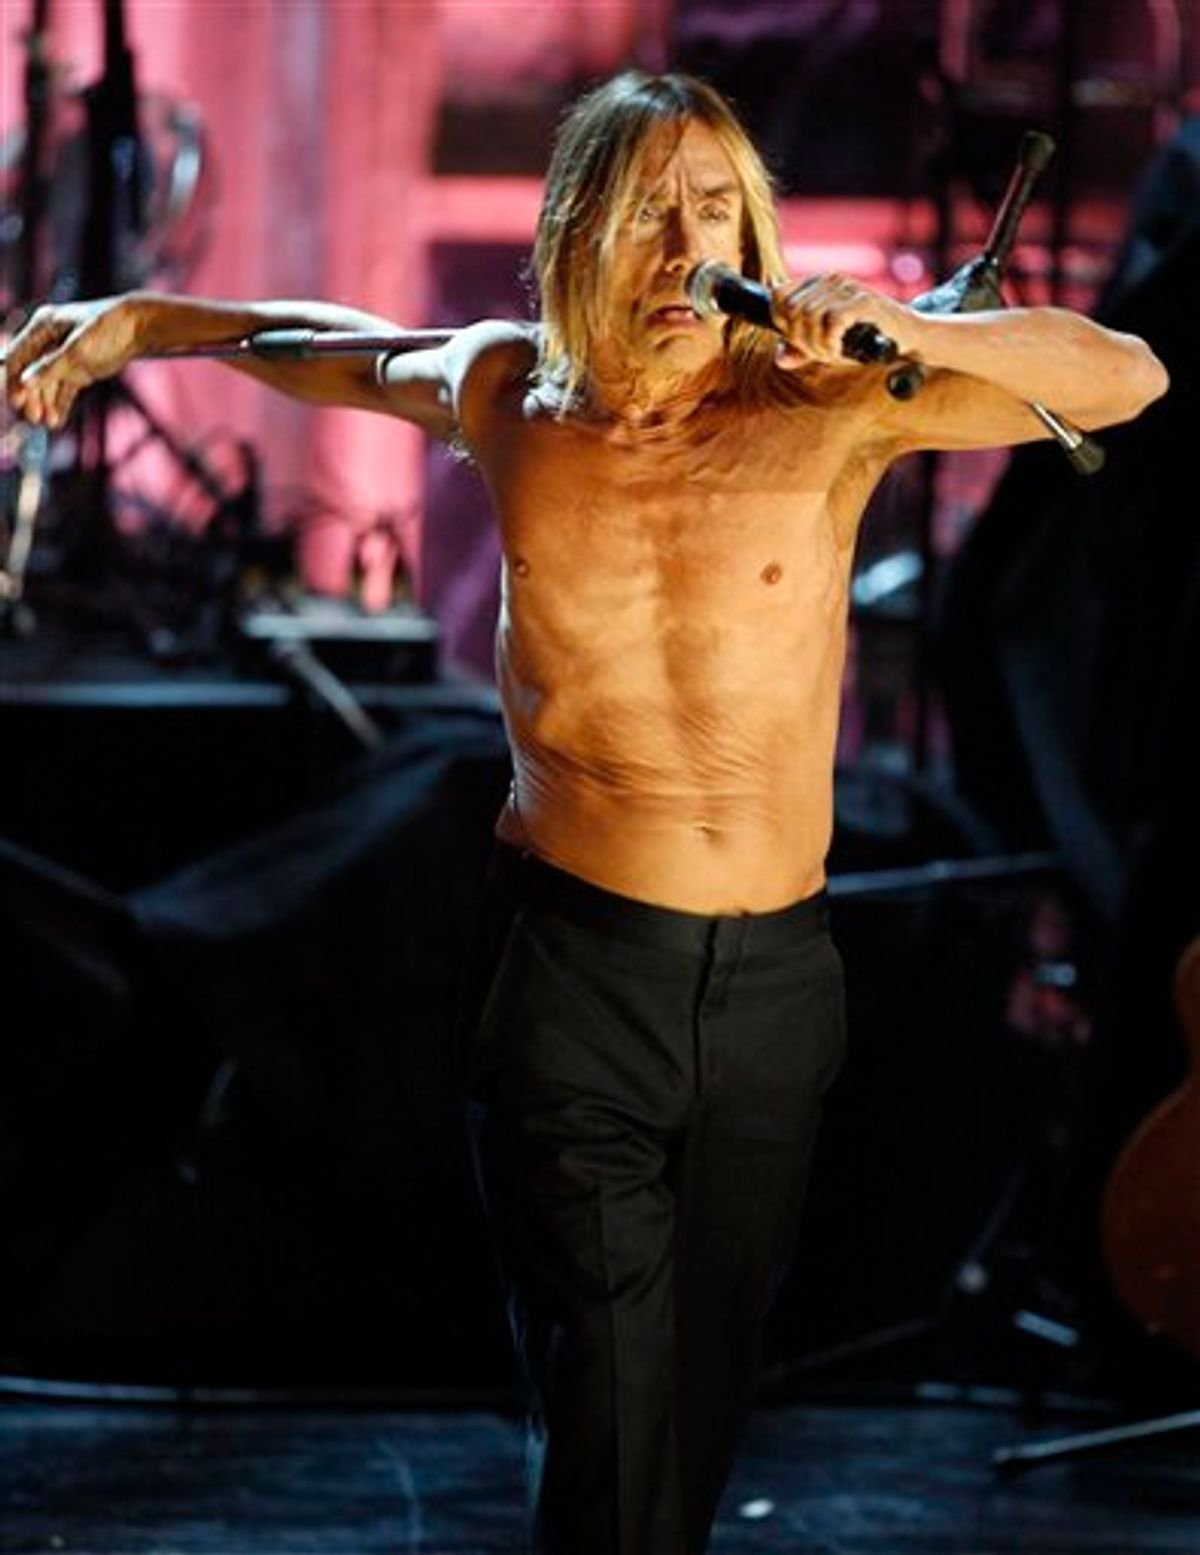 Iggy Pop performs during the Rock and Roll Hall of Fame induction ceremony in New York, Monday, March 15, 2010.  (AP Photo/Jason DeCrow) (AP)